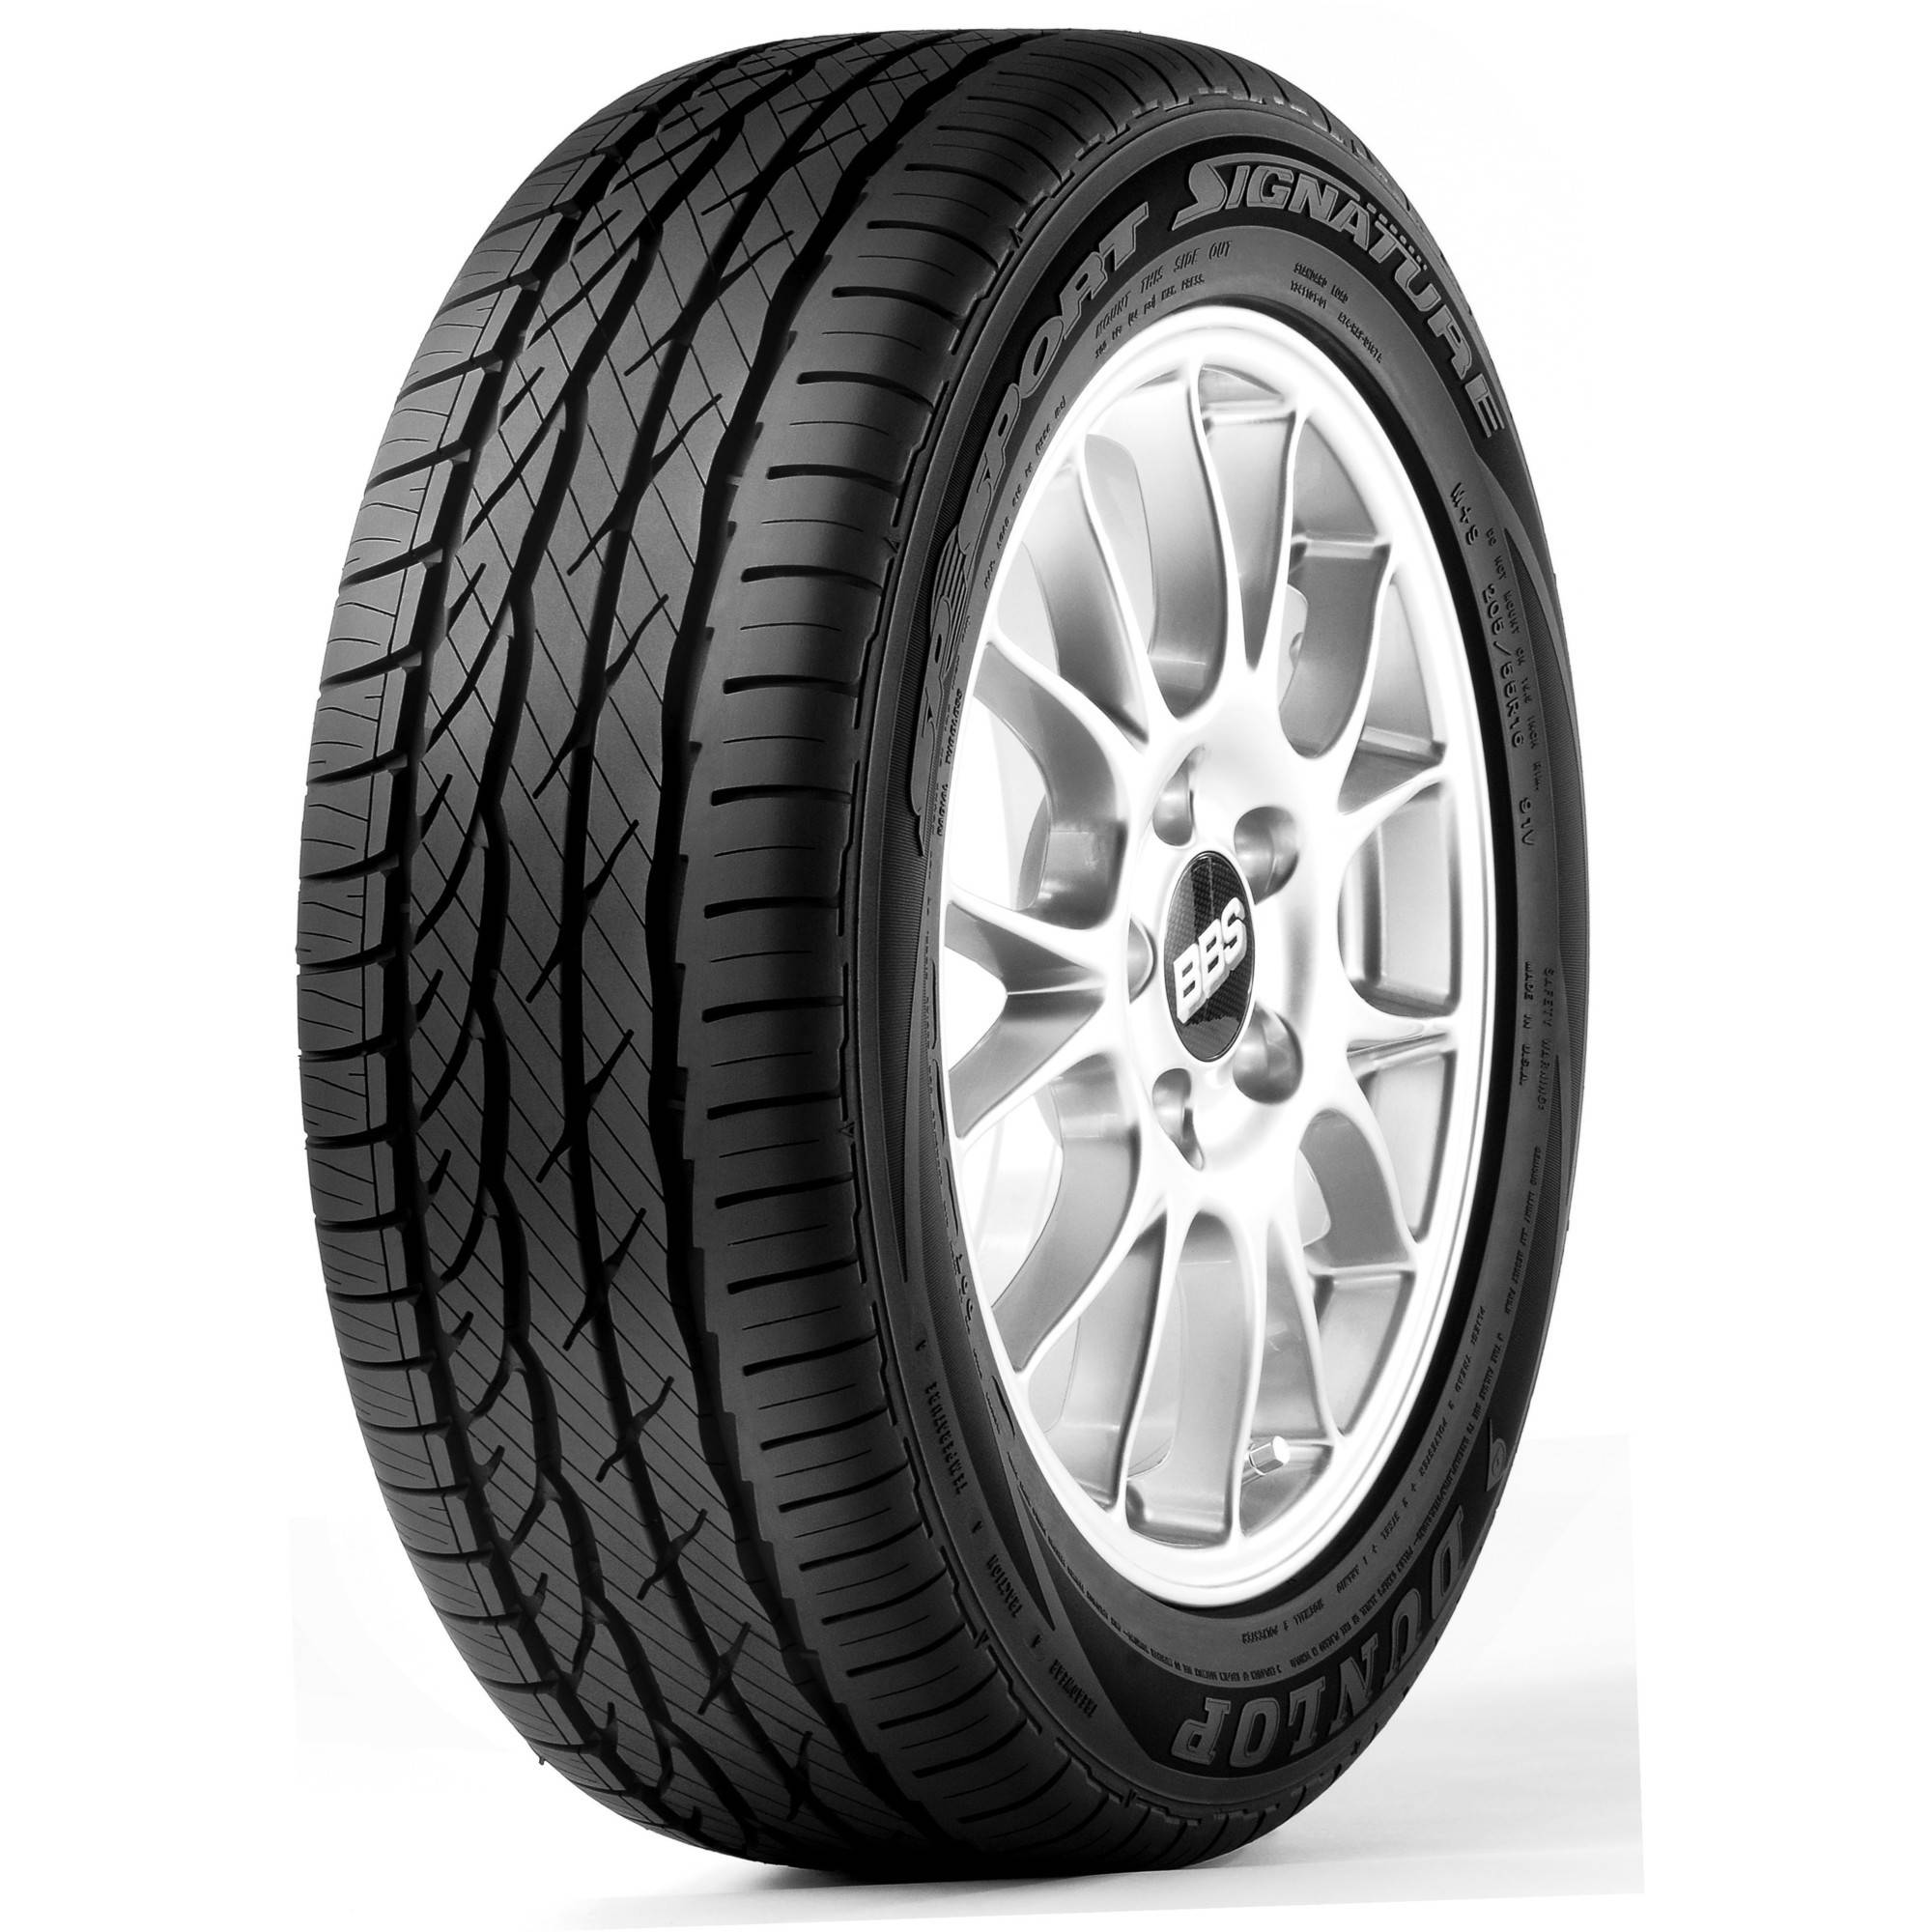 Dunlop SP Sport Signature Tire 225/50R18 95W